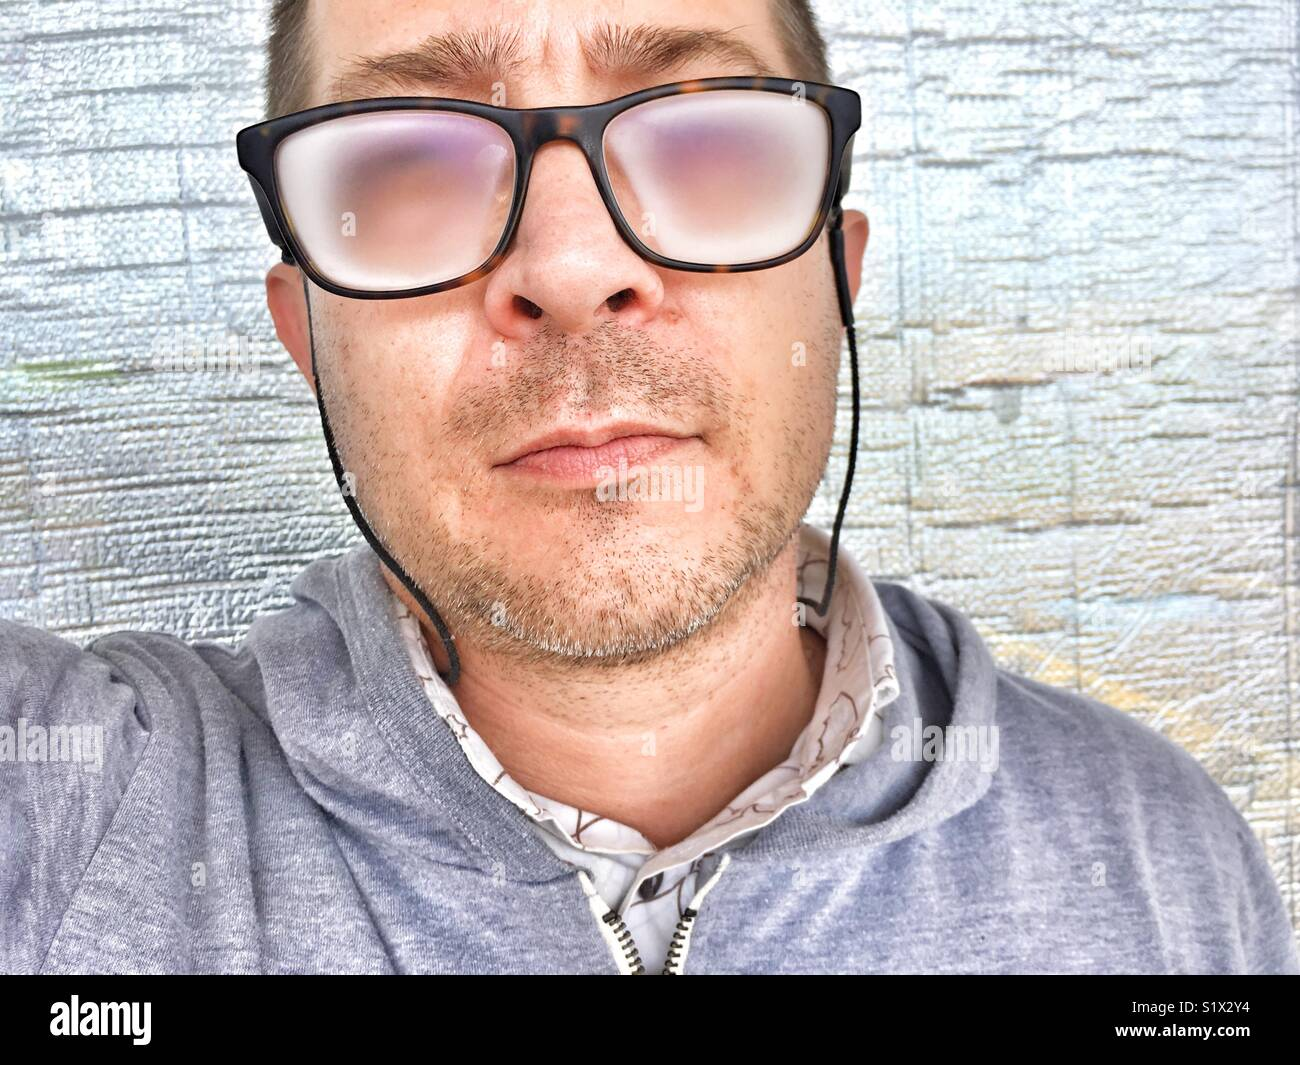 Headshot of a man, unshaven and wearing fogged up eyeglasses. - Stock Image